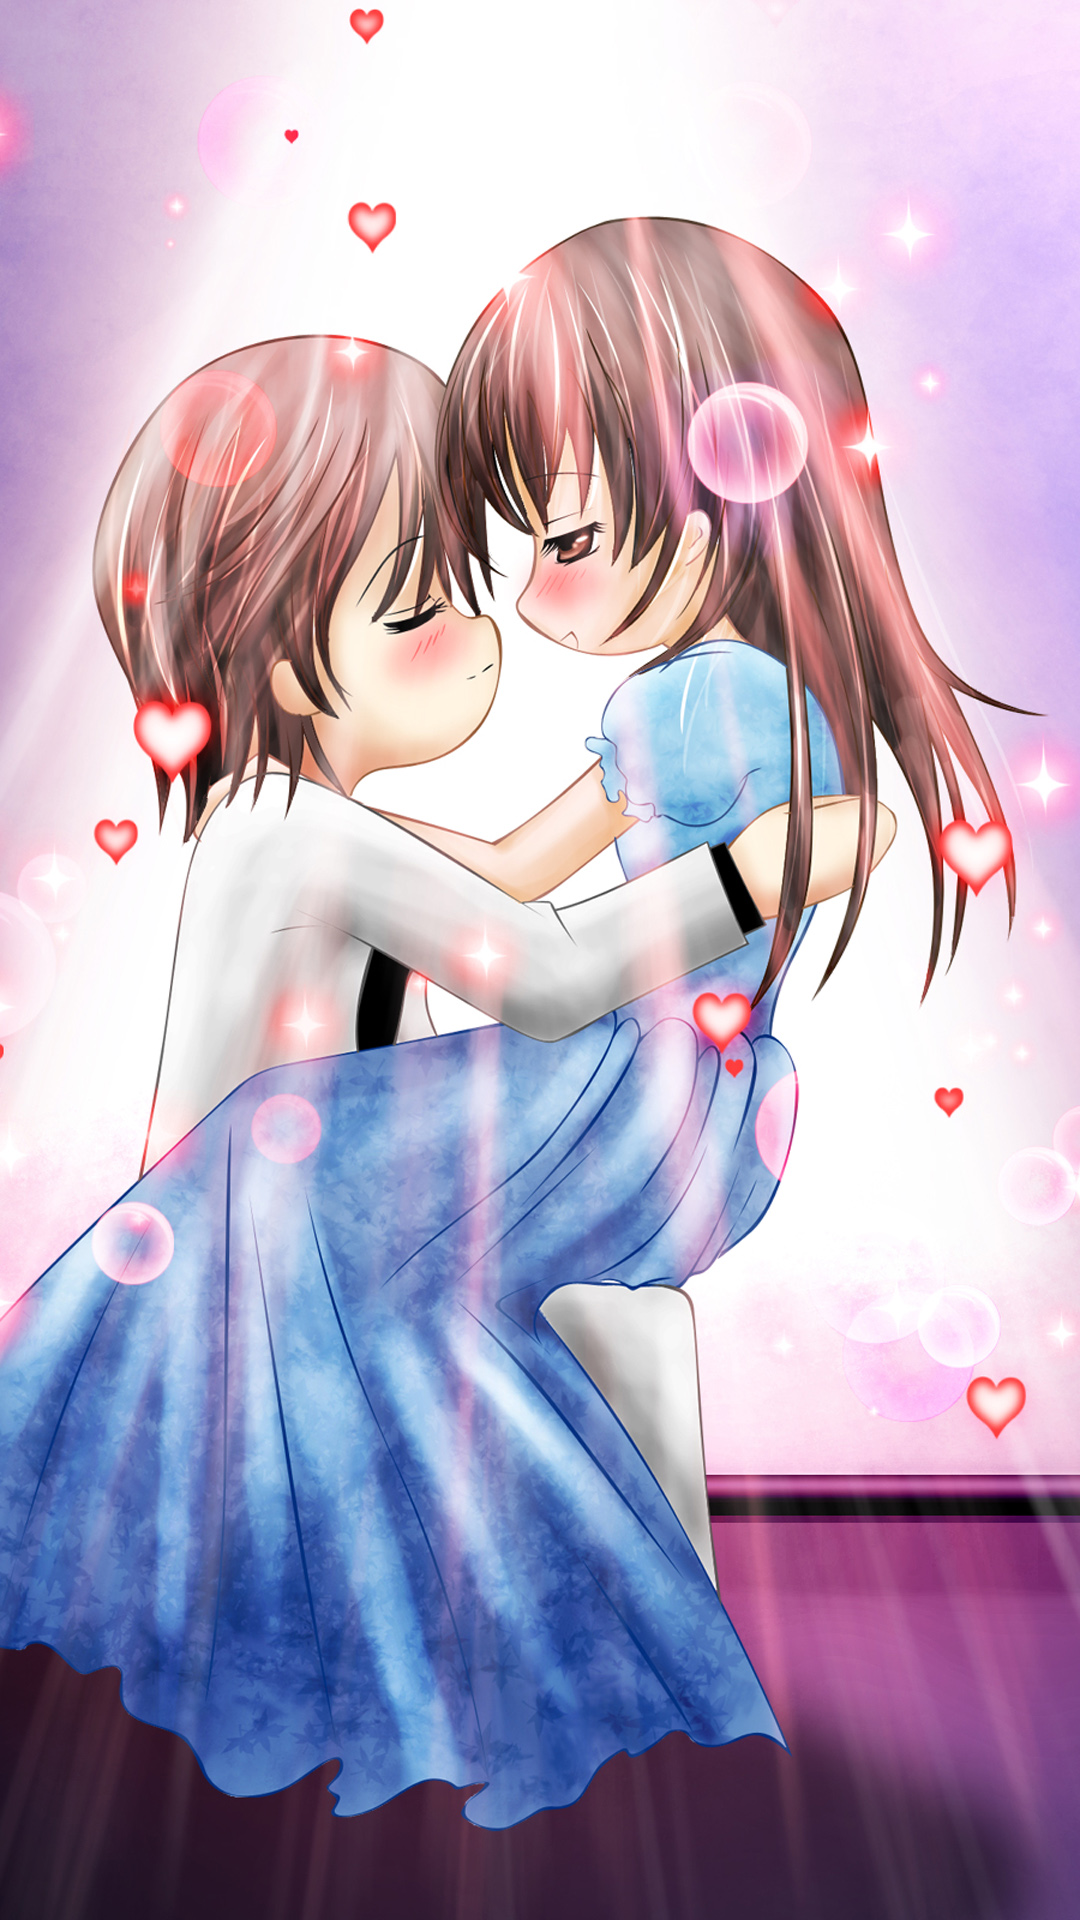 Anime Love Couple Wallpaper Page 1